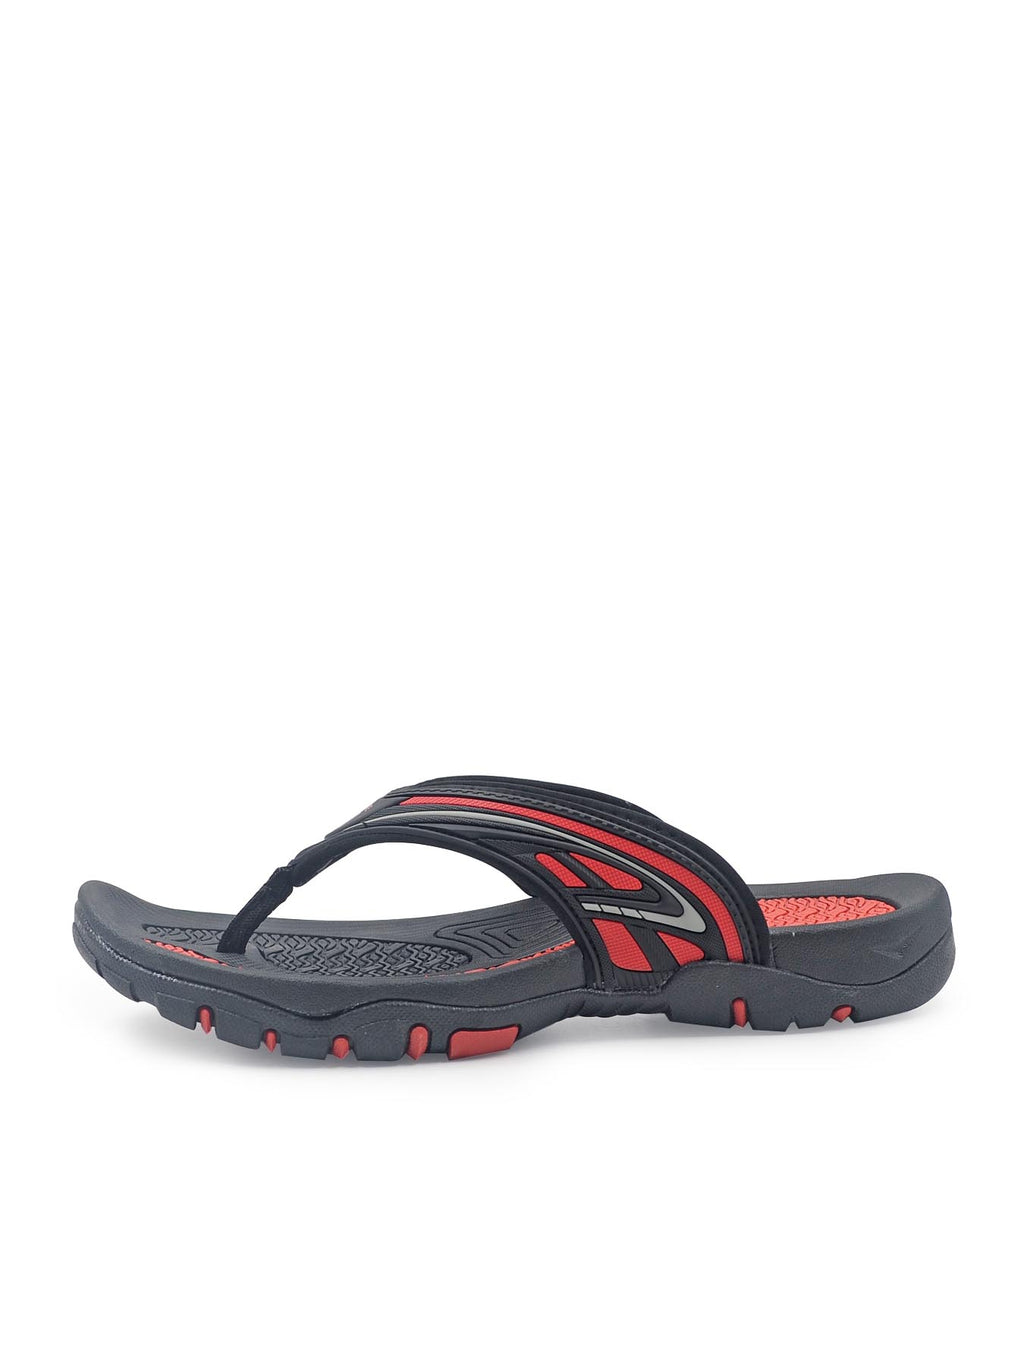 Larrie Black Sporty Sandals